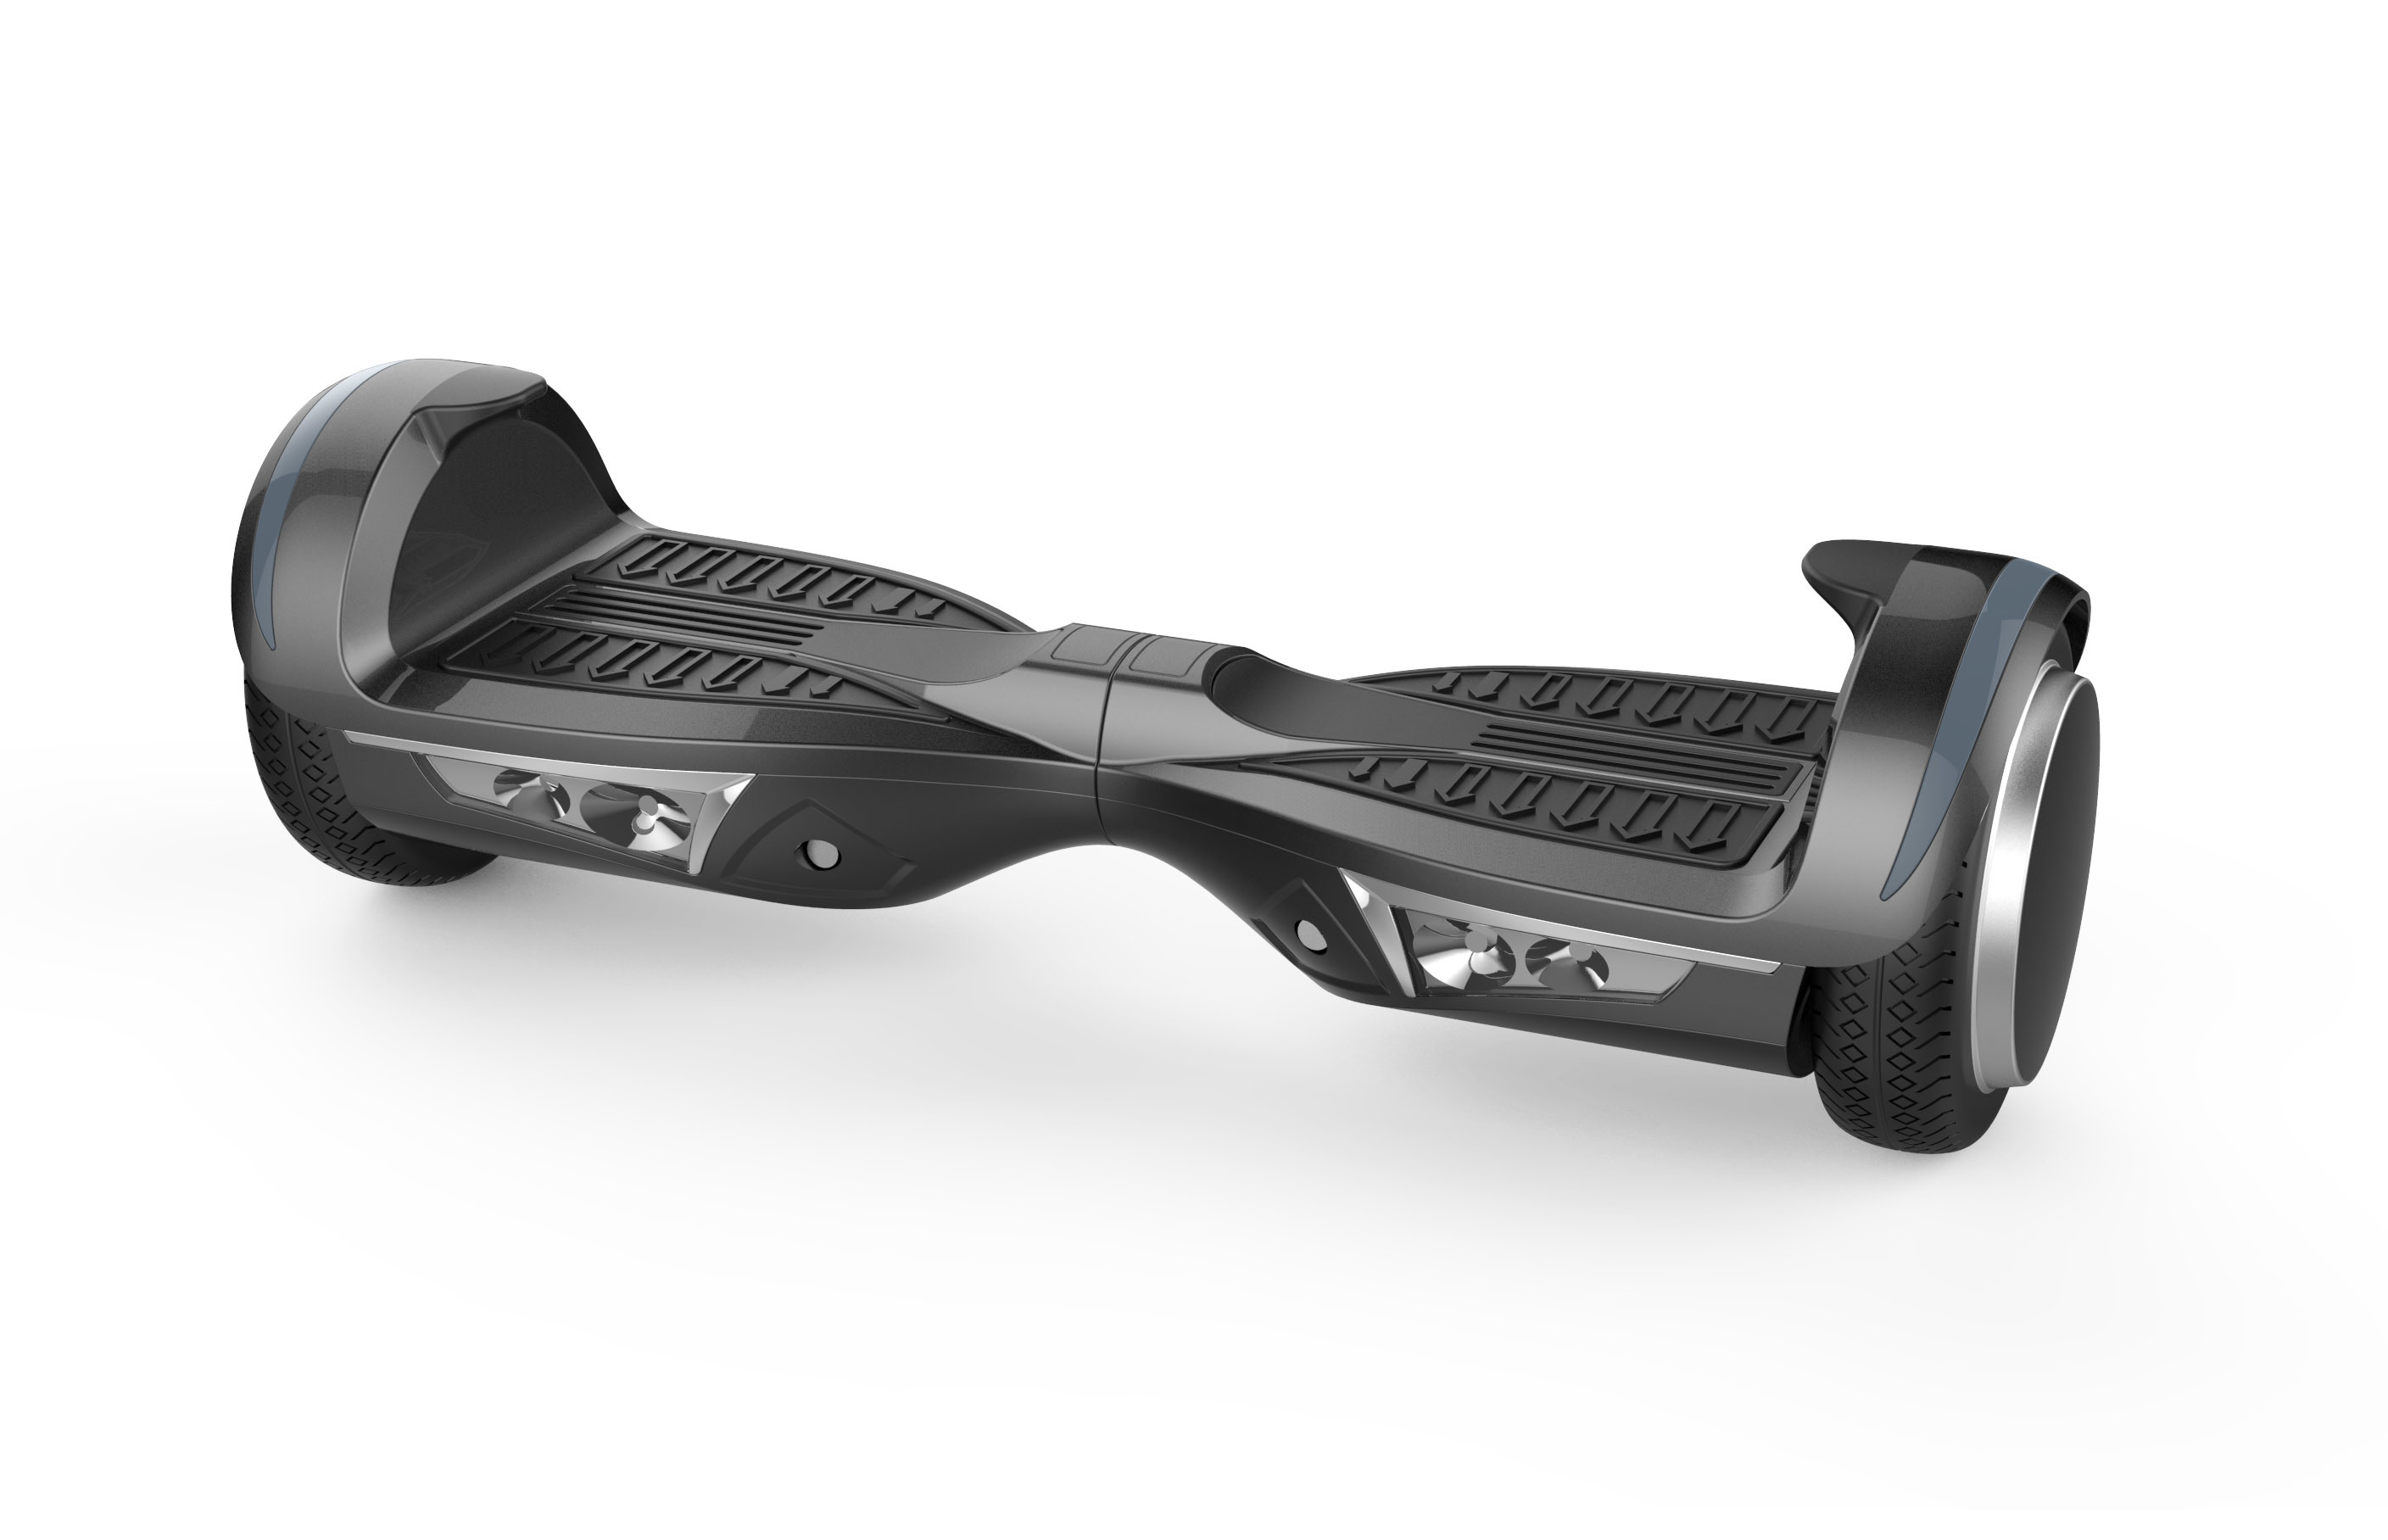 Smartmey Jumpable Electric Scooter N5 Best Two Wheel Hoverboard Self Balancing Scooter